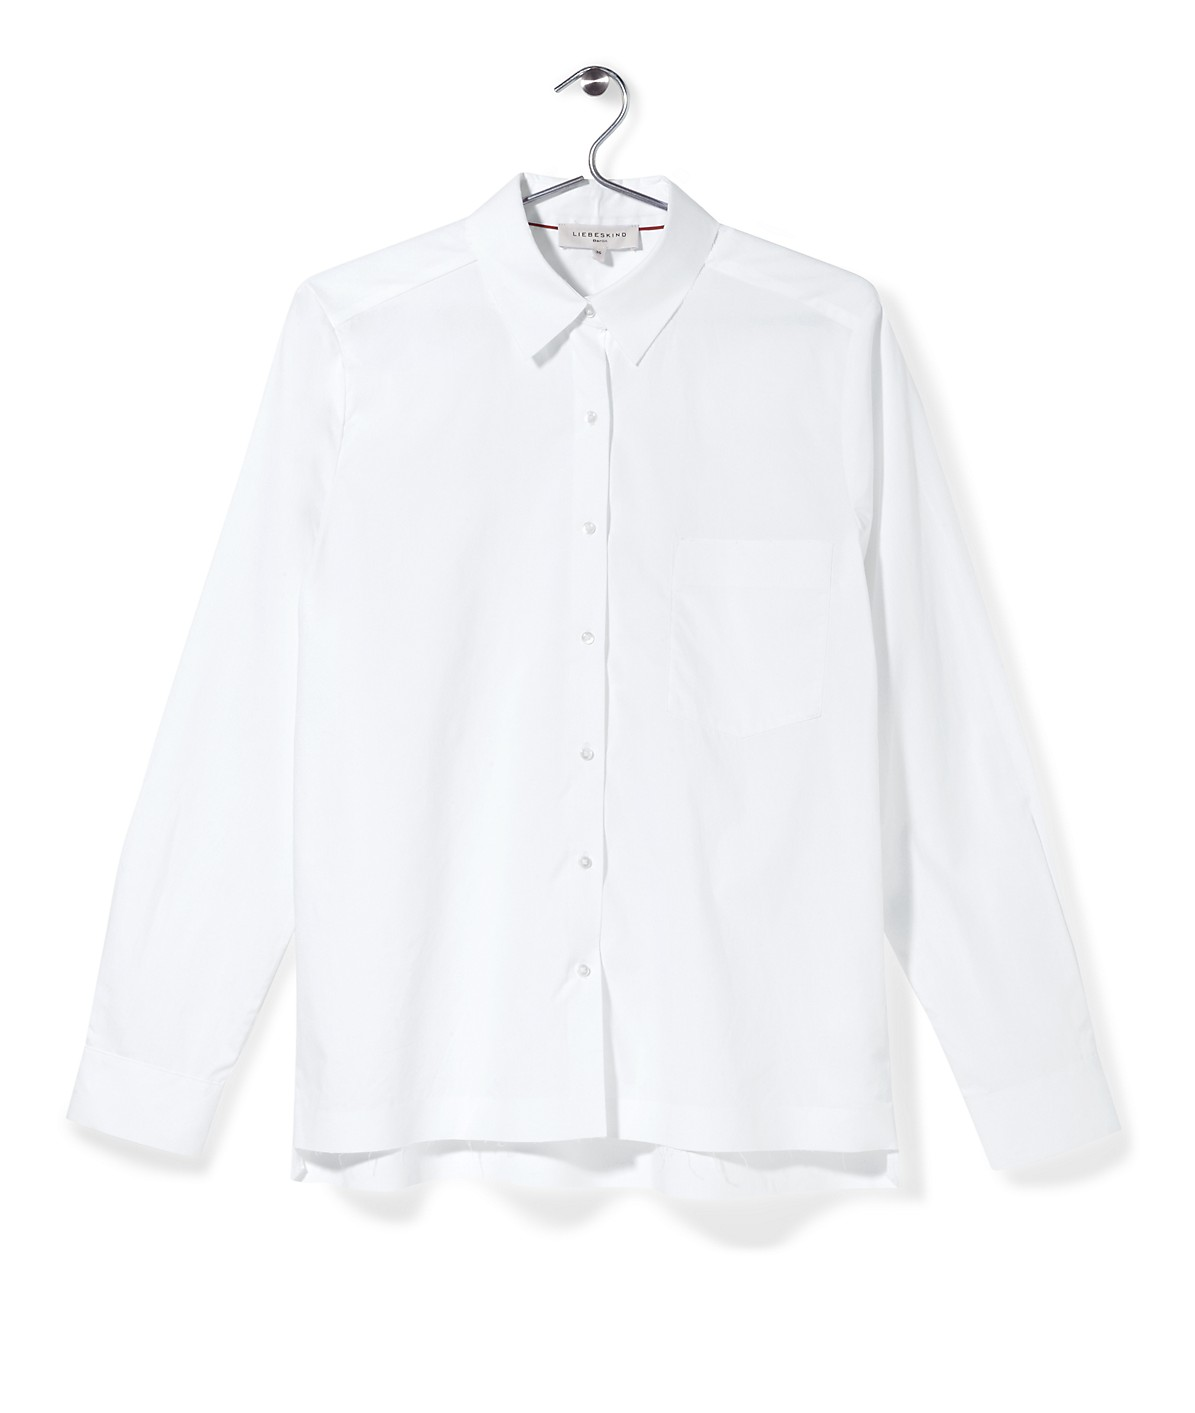 Shirt blouse H2162801 from liebeskind